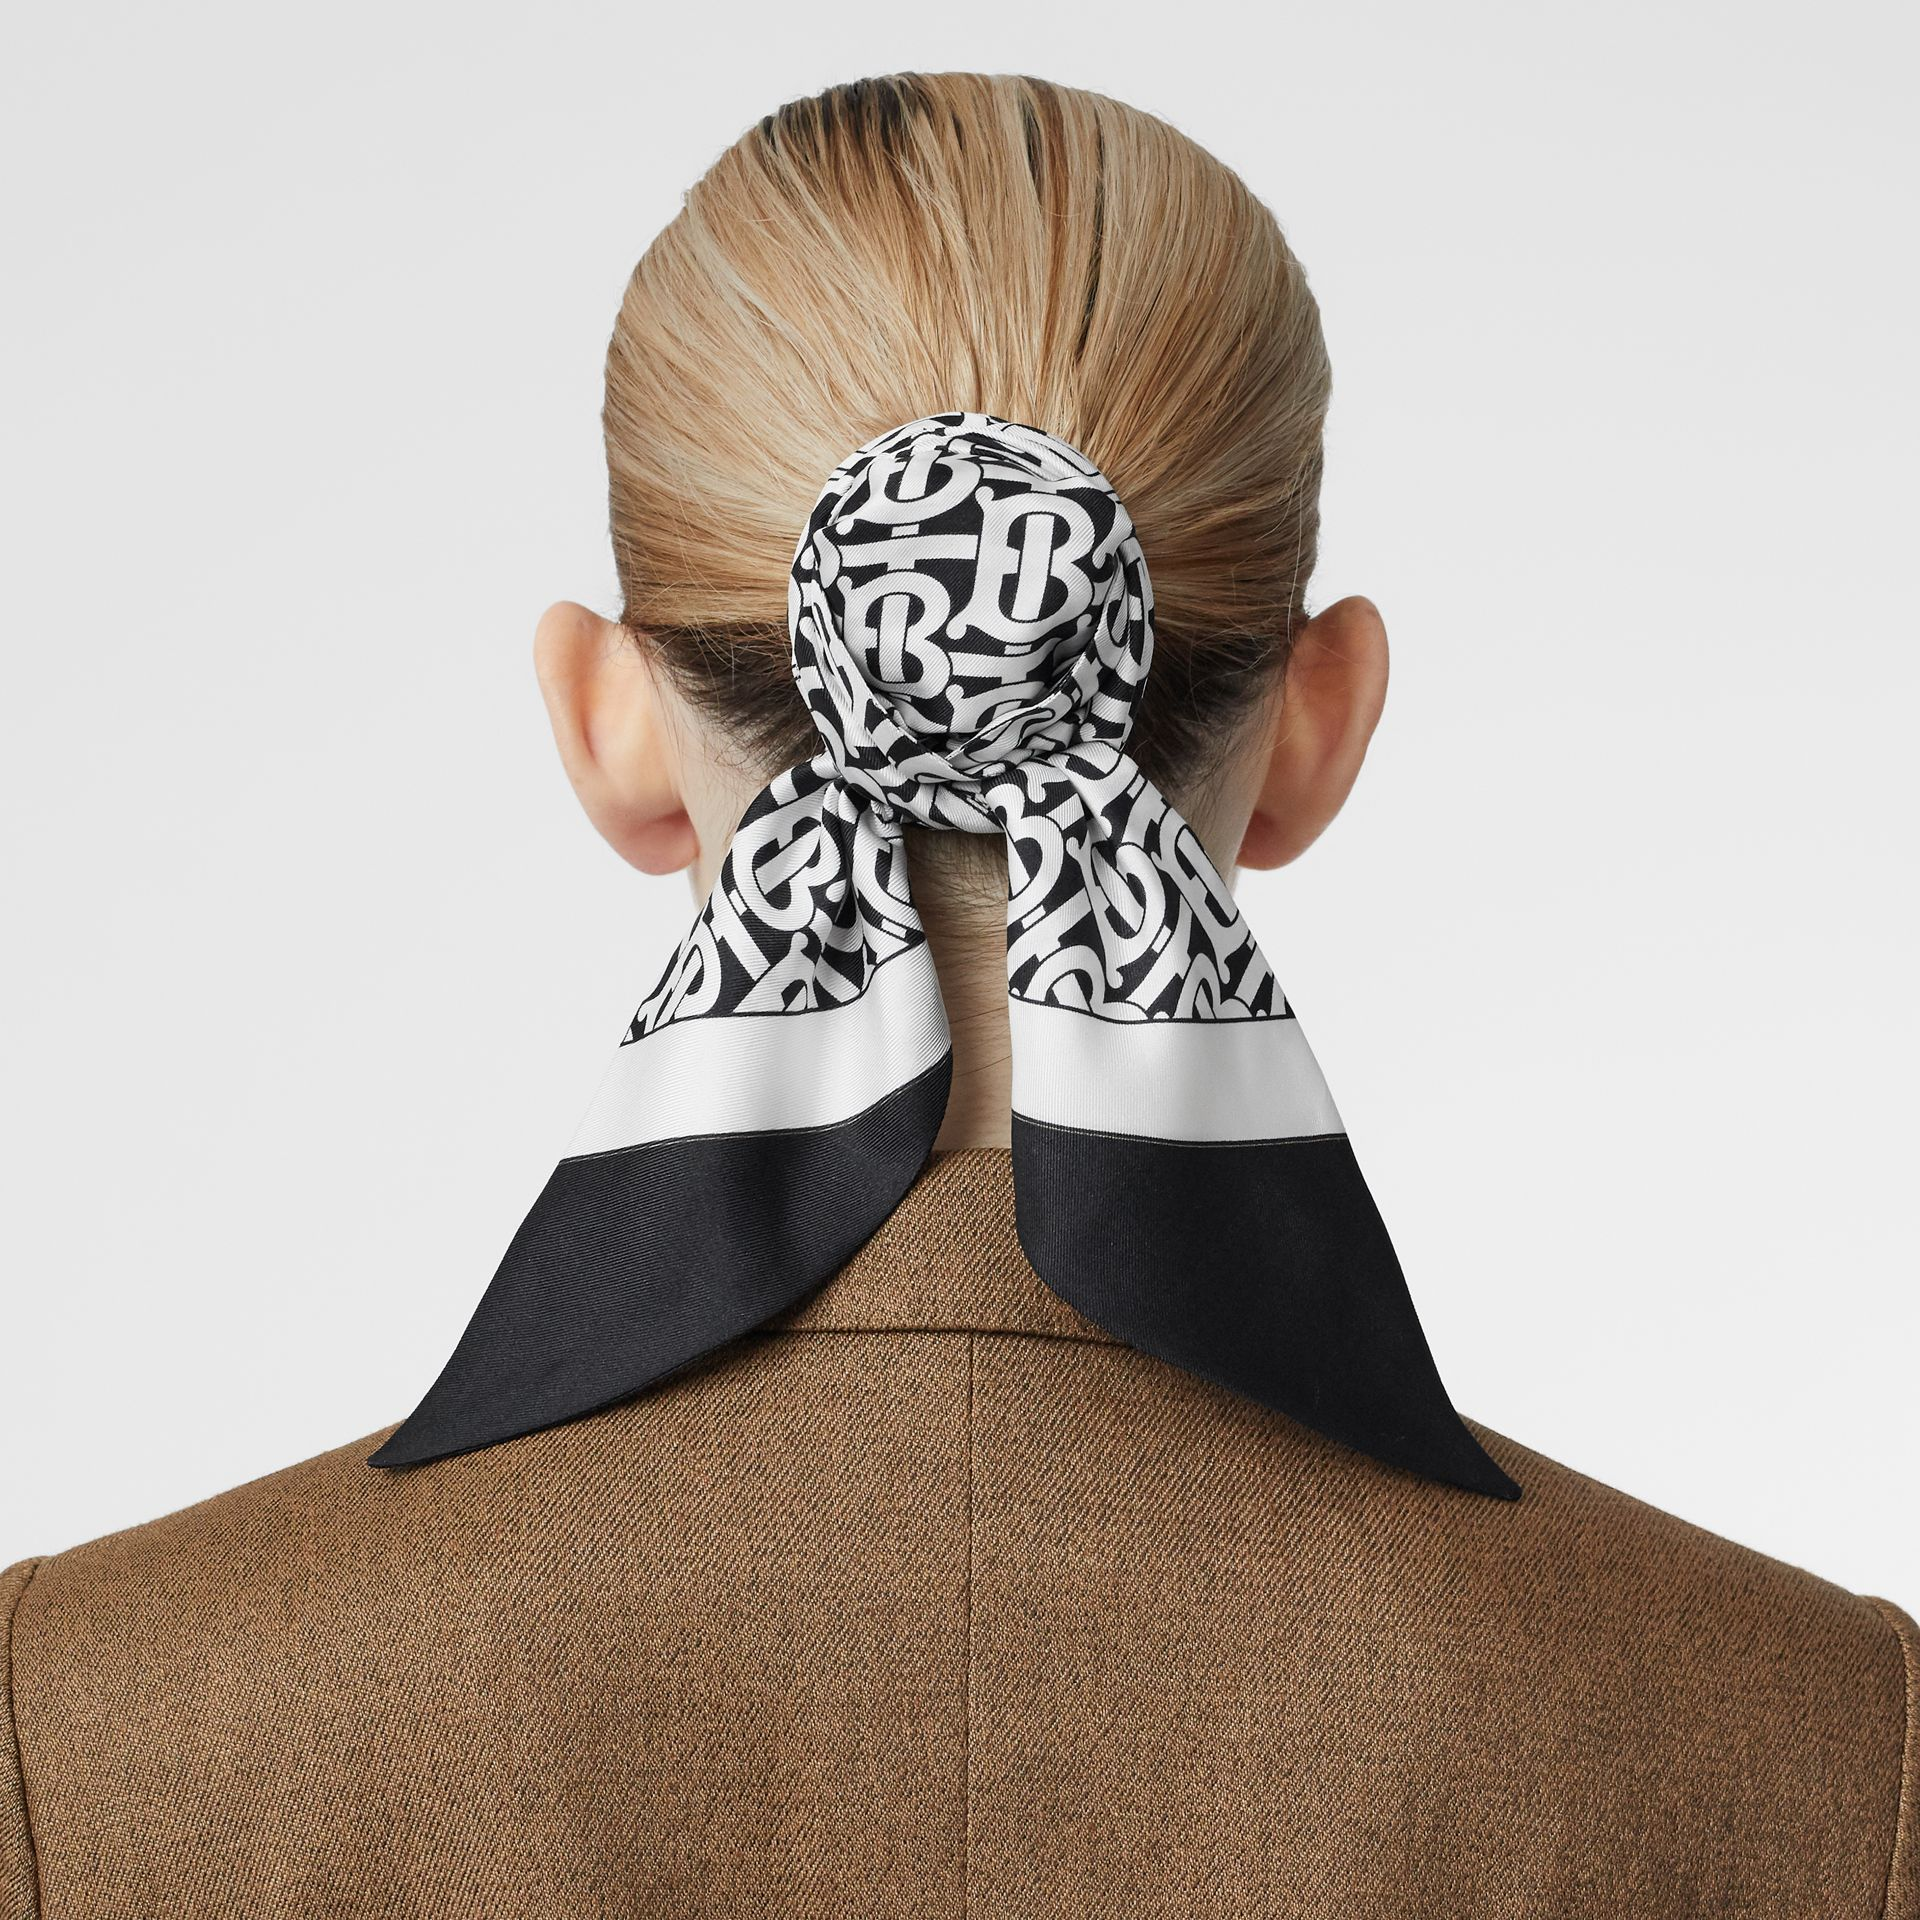 Monogram Print Silk Hair Scarf in Monochrome - Women | Burberry United States - gallery image 2